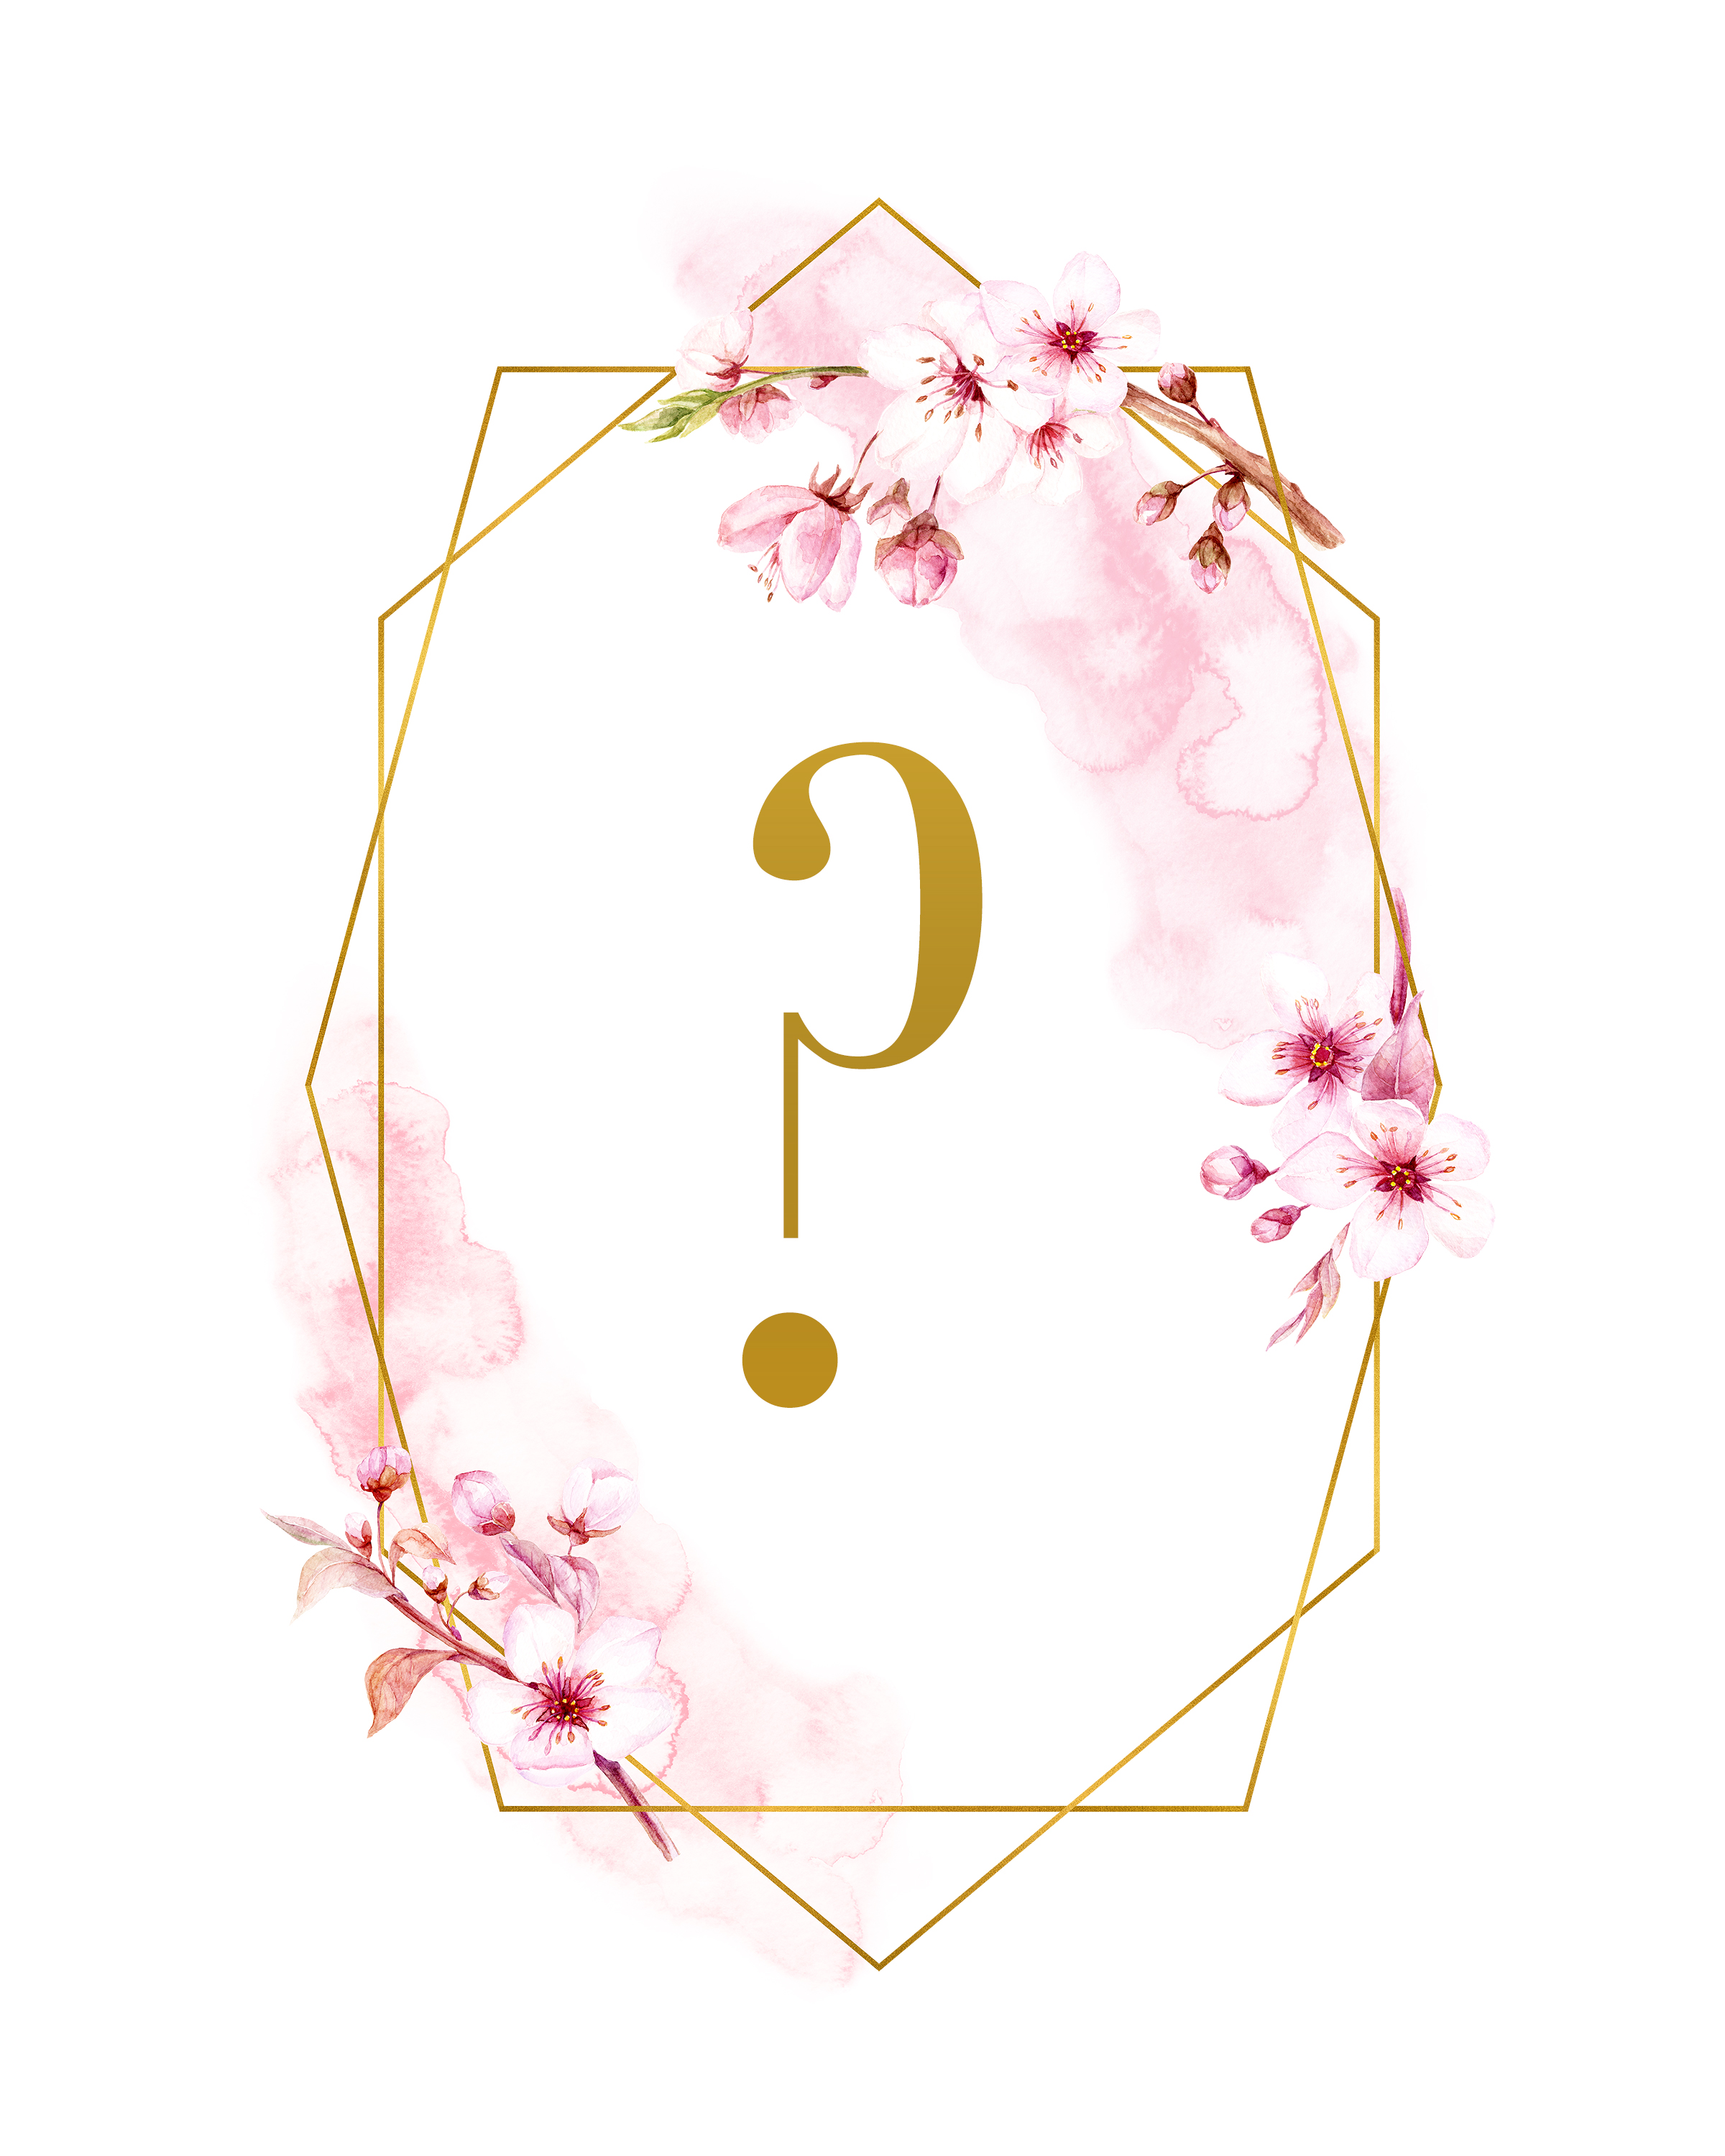 graphic regarding Printable Question Mark referred to as Totally free Printable Spring Season GLAM Monograms - The Cottage Industry